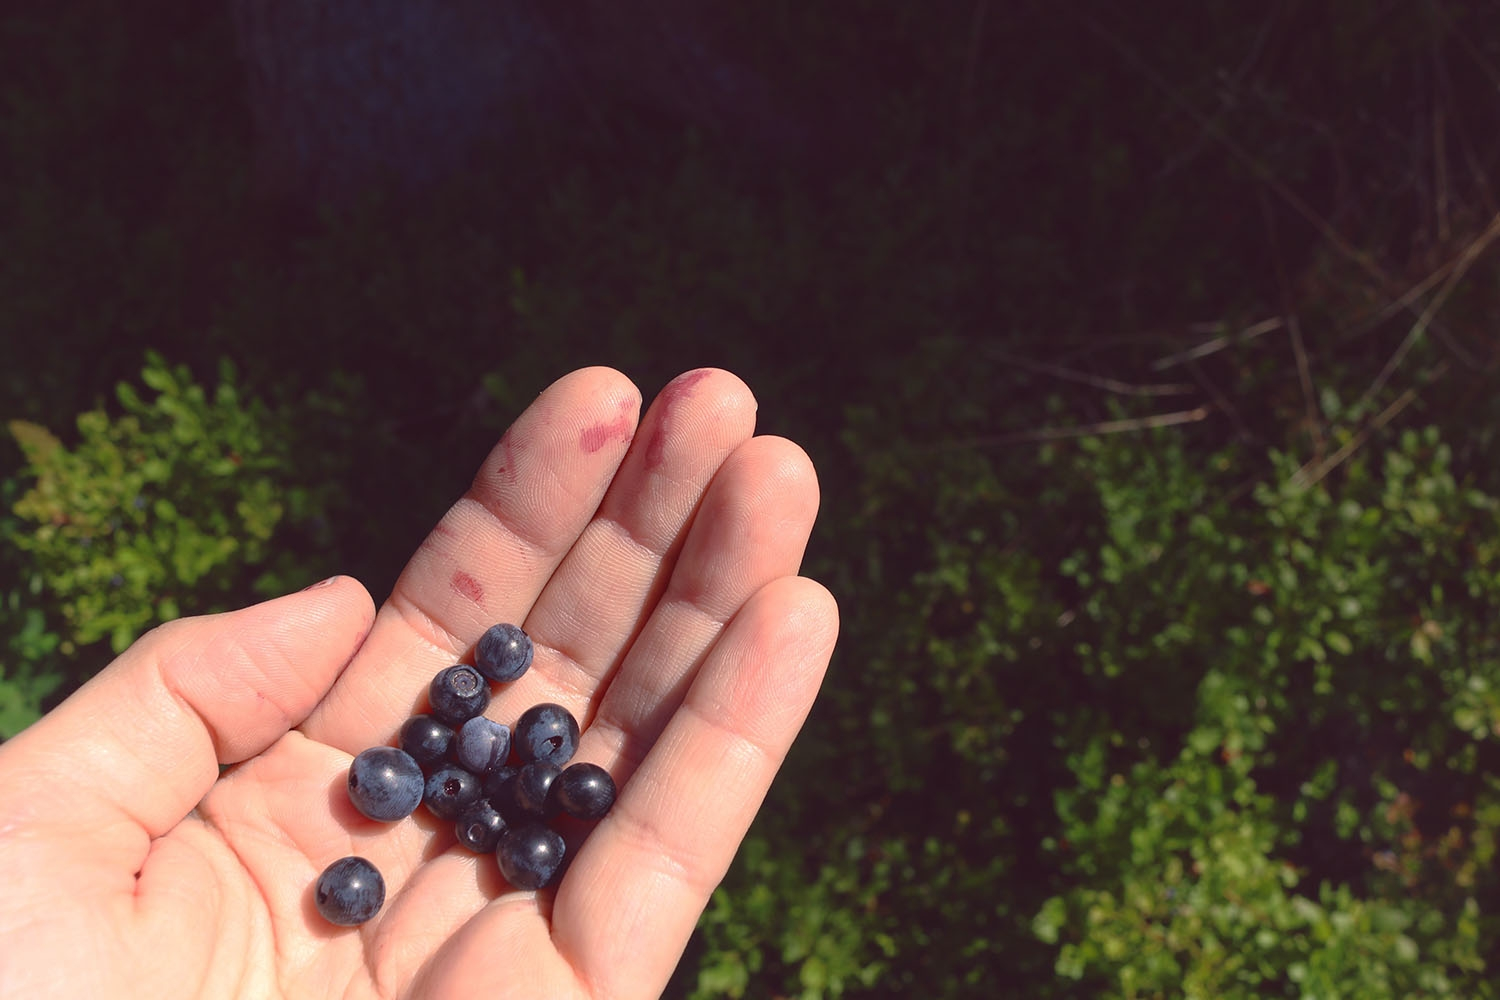 bluberries in the forest